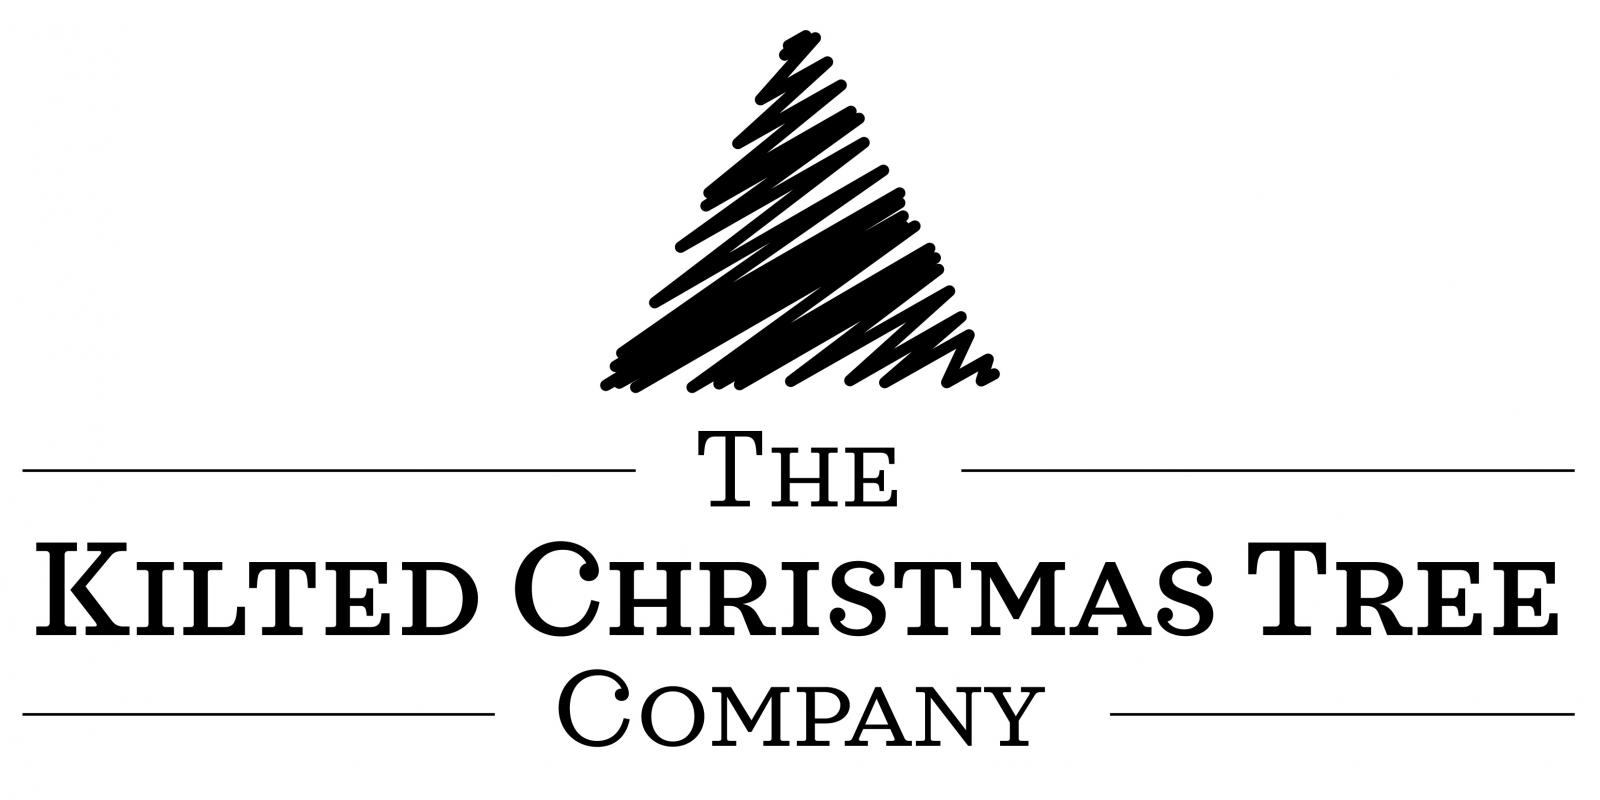 The Kilted Christmas Tree Company